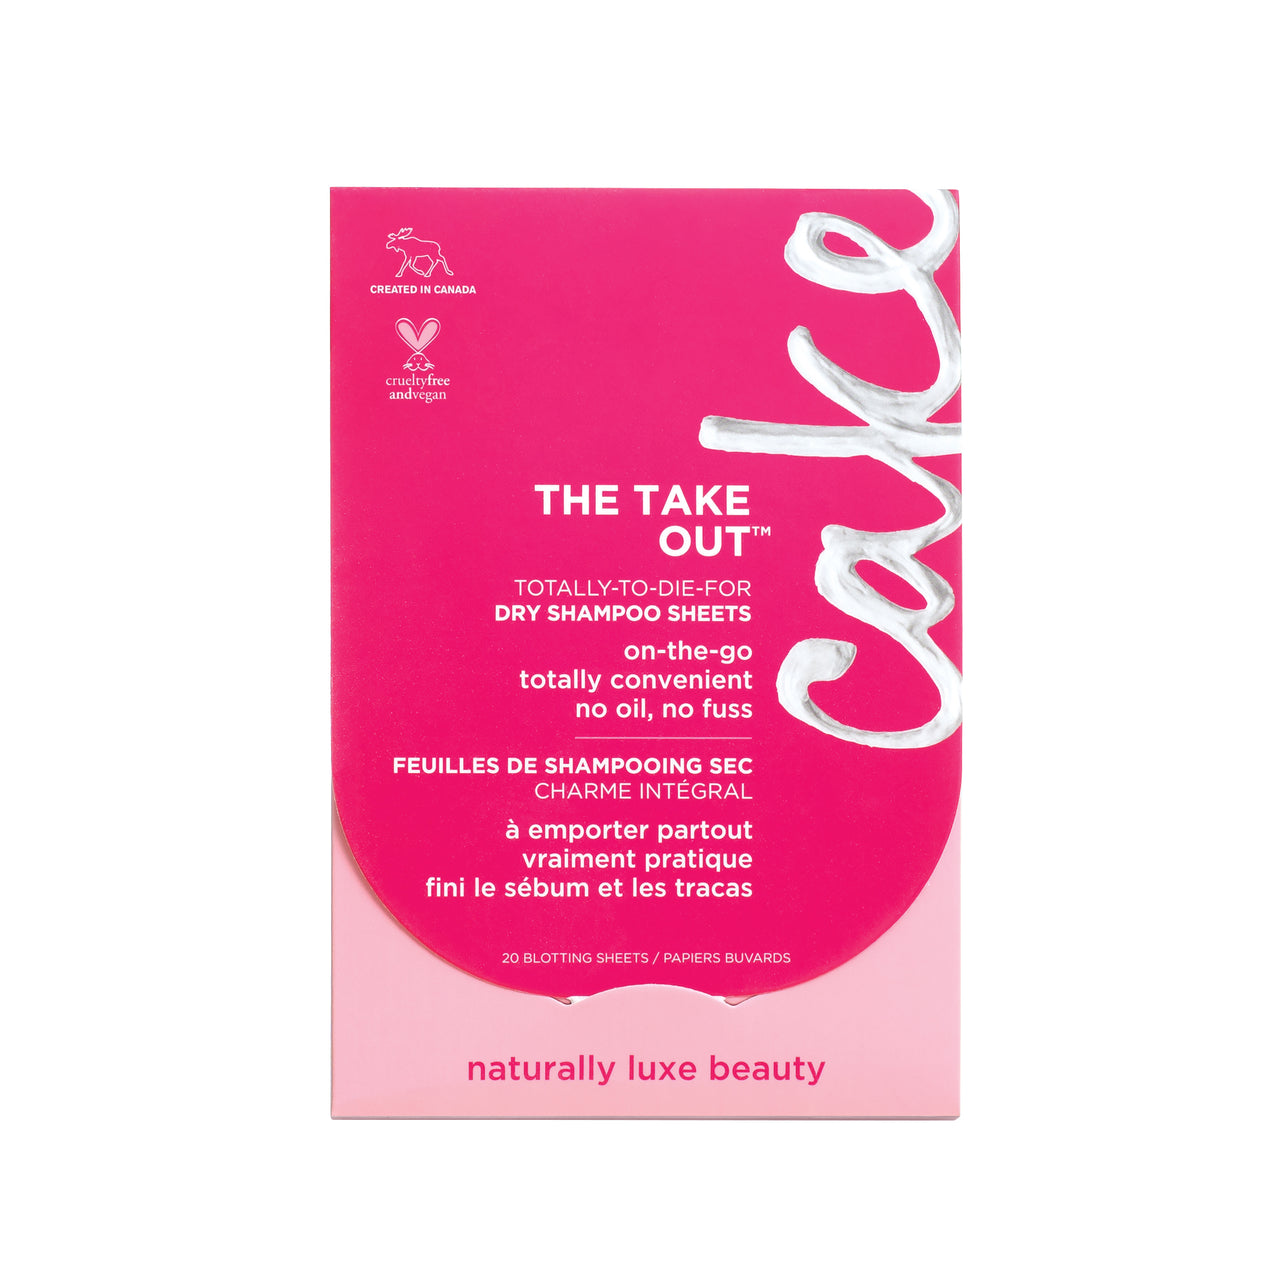 The Take Out  Dry Shampoo Sheets, 20 Blotting Sheets